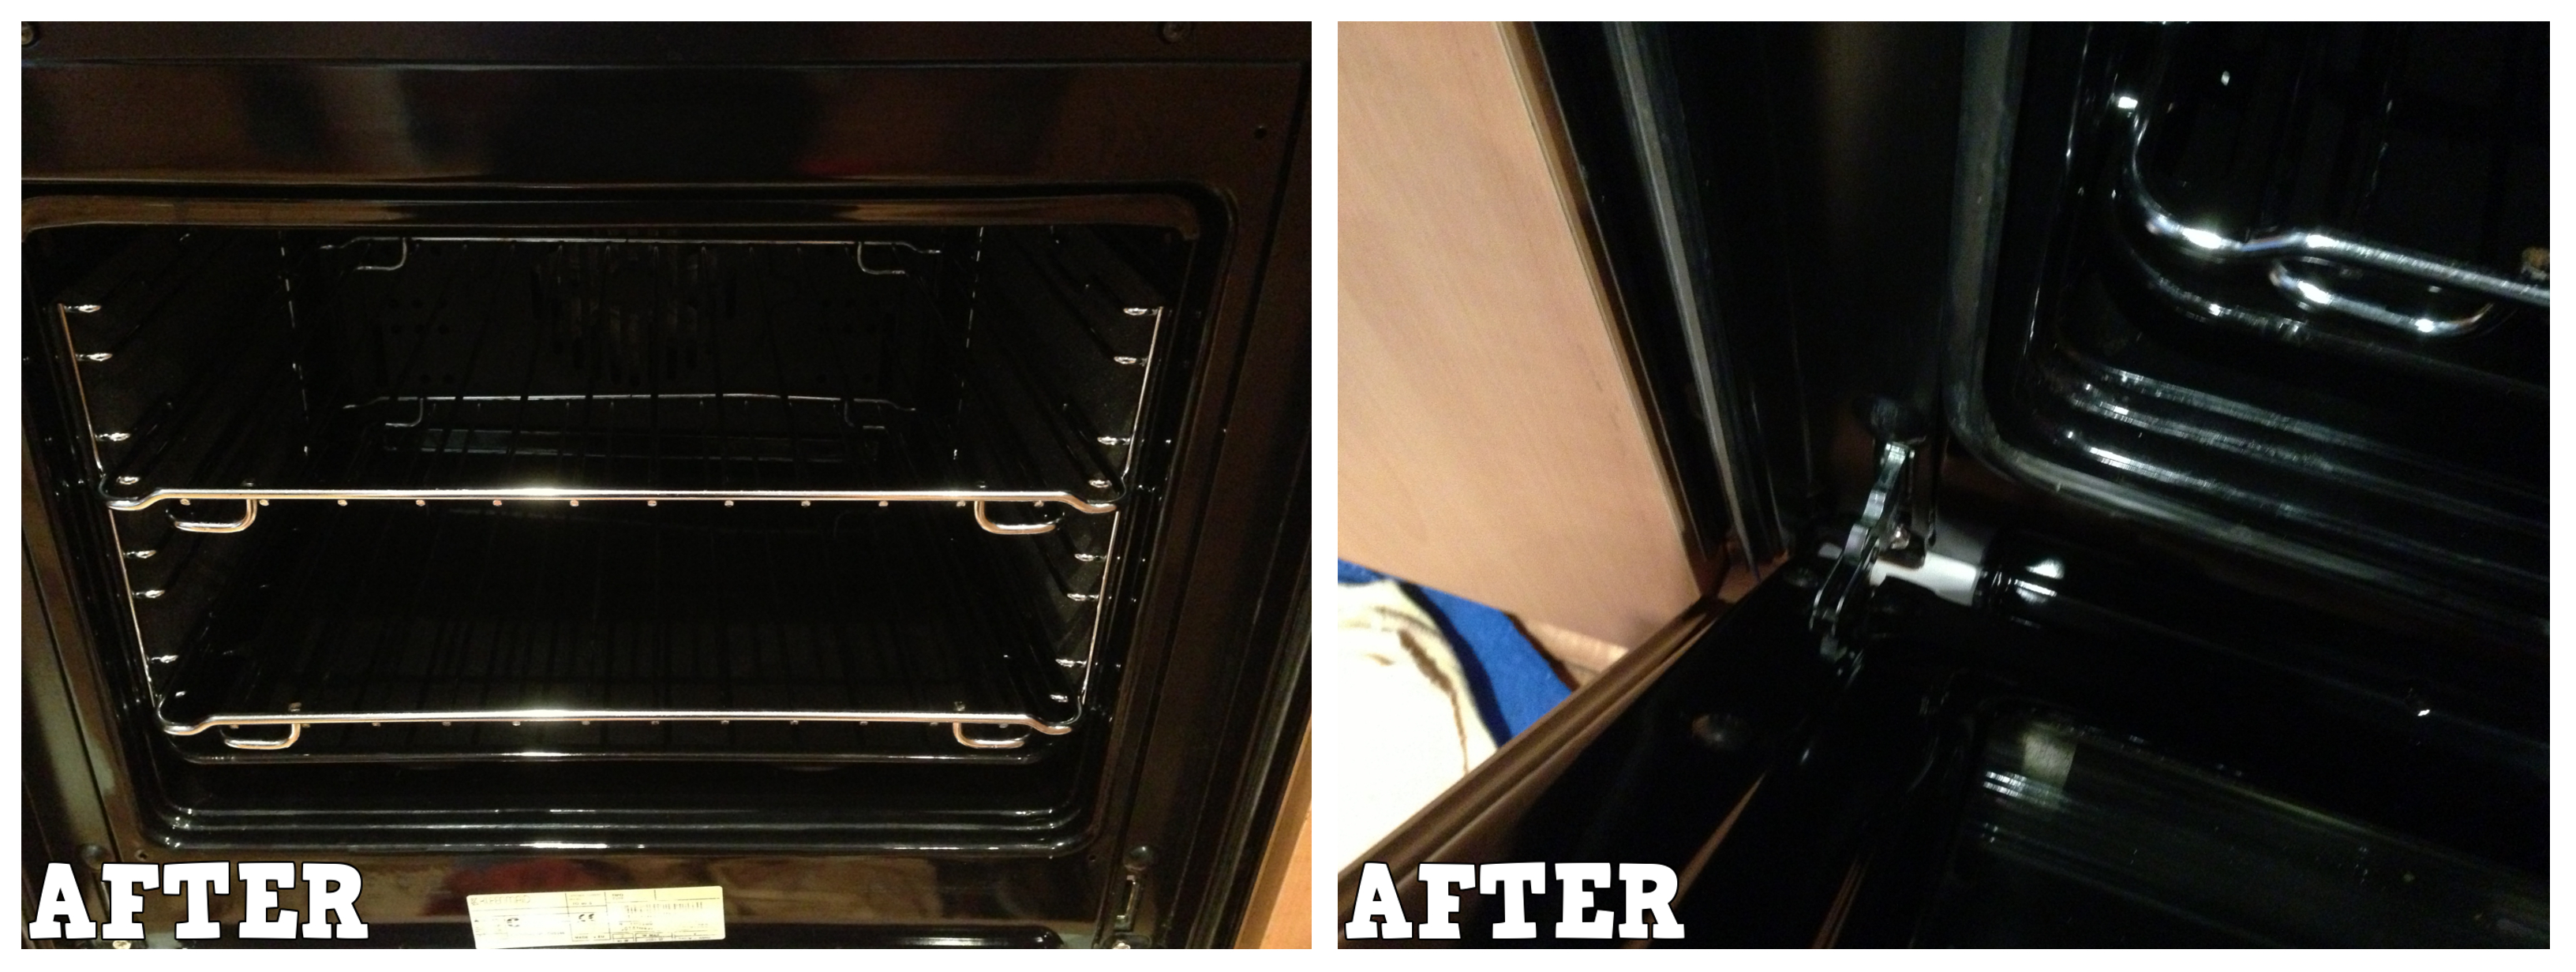 Oven Cleaning Perth Professional Oven Cleaning